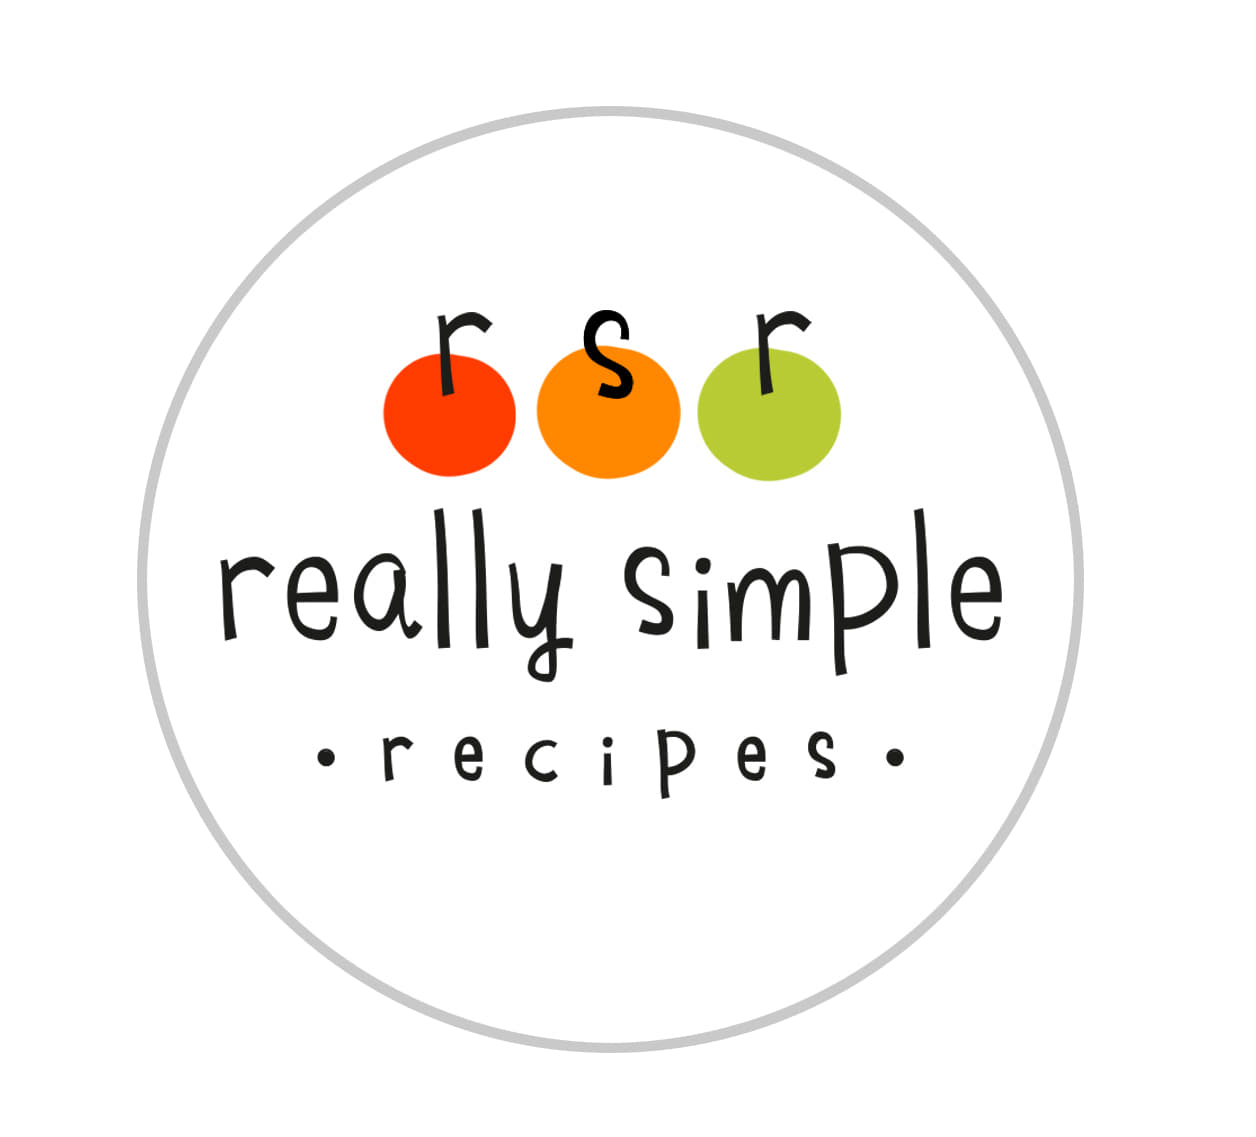 Welcome to Really Simple Recipes